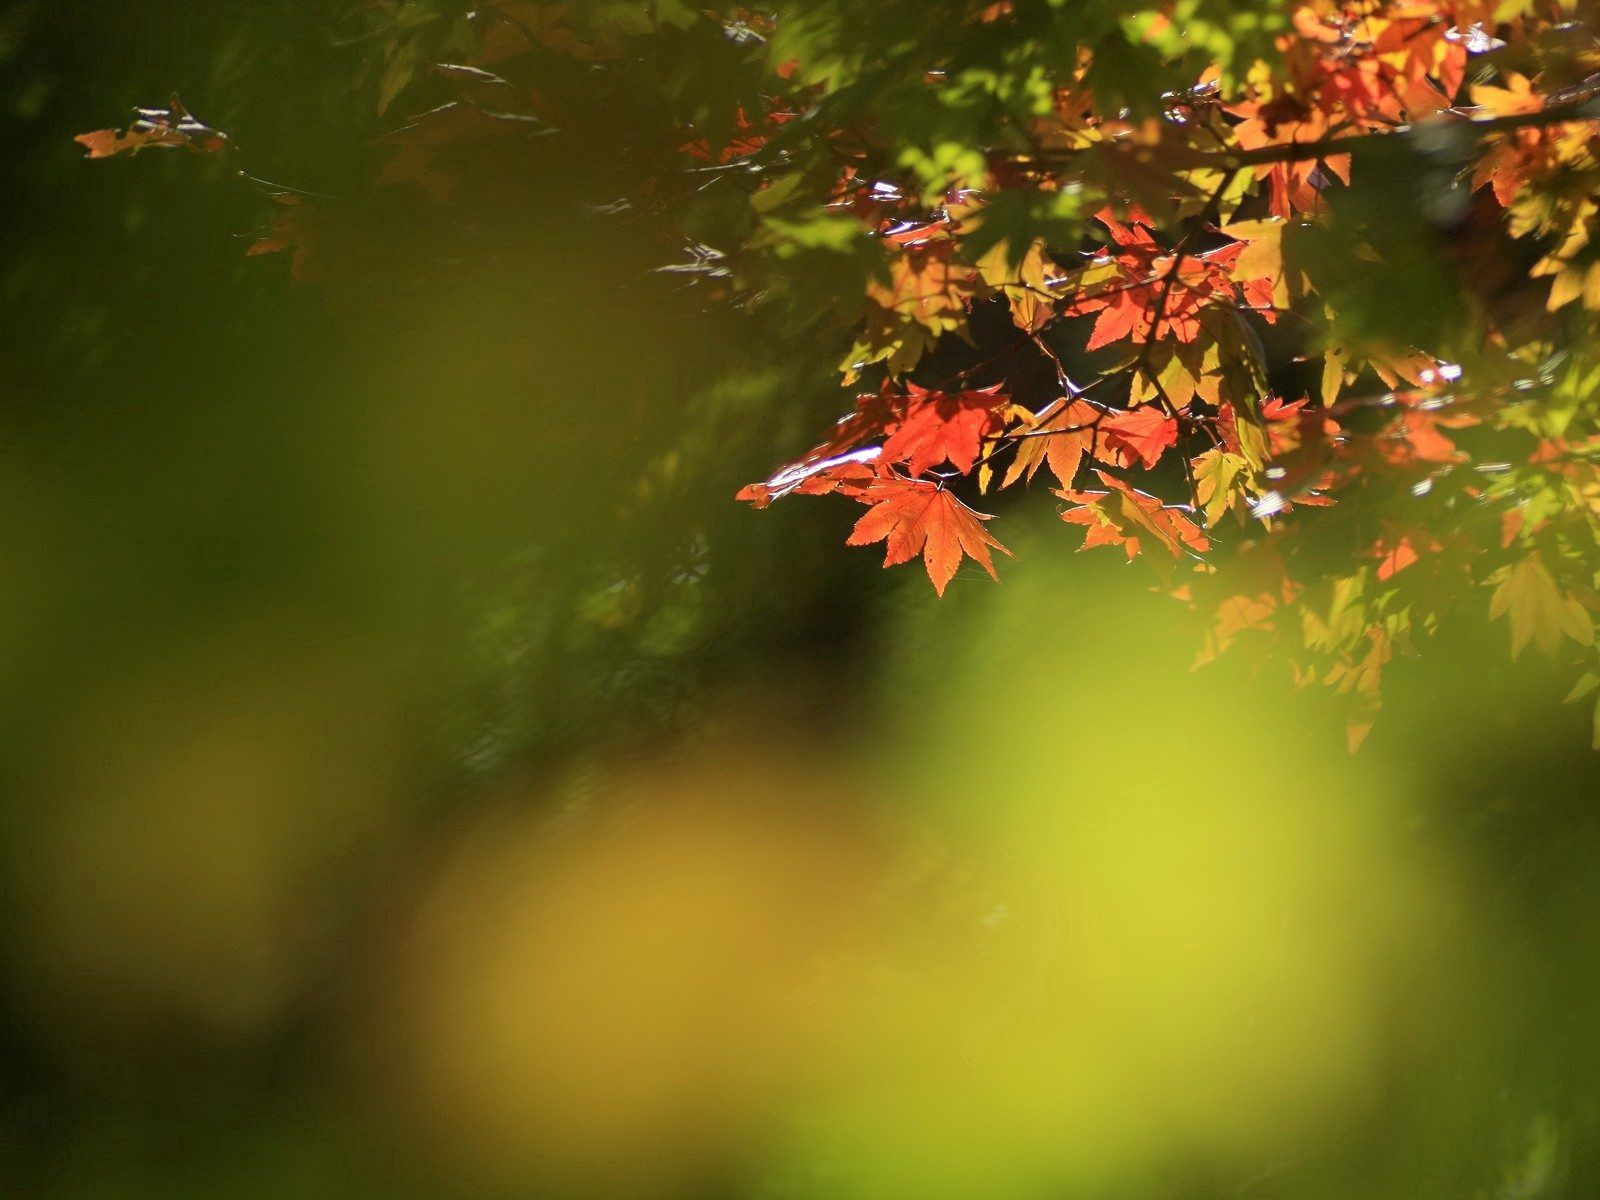 84391 download wallpaper Nature, Leaves, Dry, Branch, Maple screensavers and pictures for free